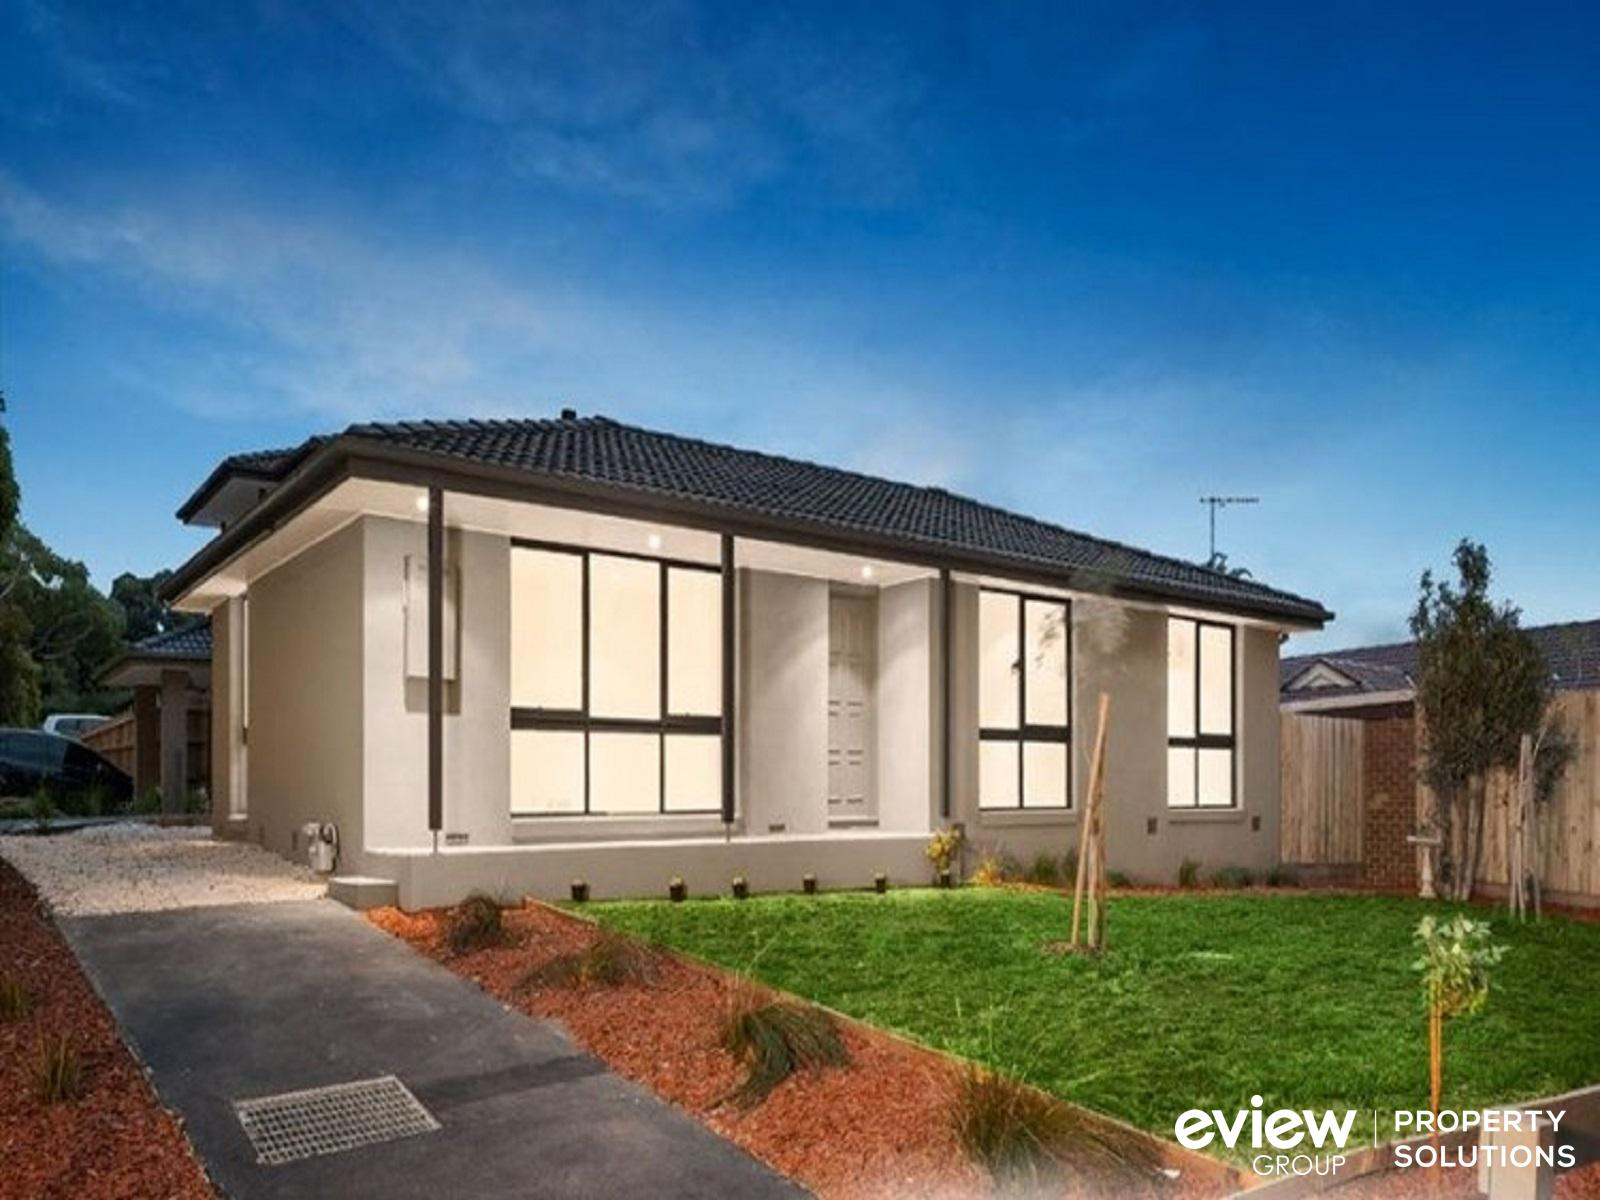 30 Wentworth Avenue, ROWVILLE, VIC, 3178 - Image